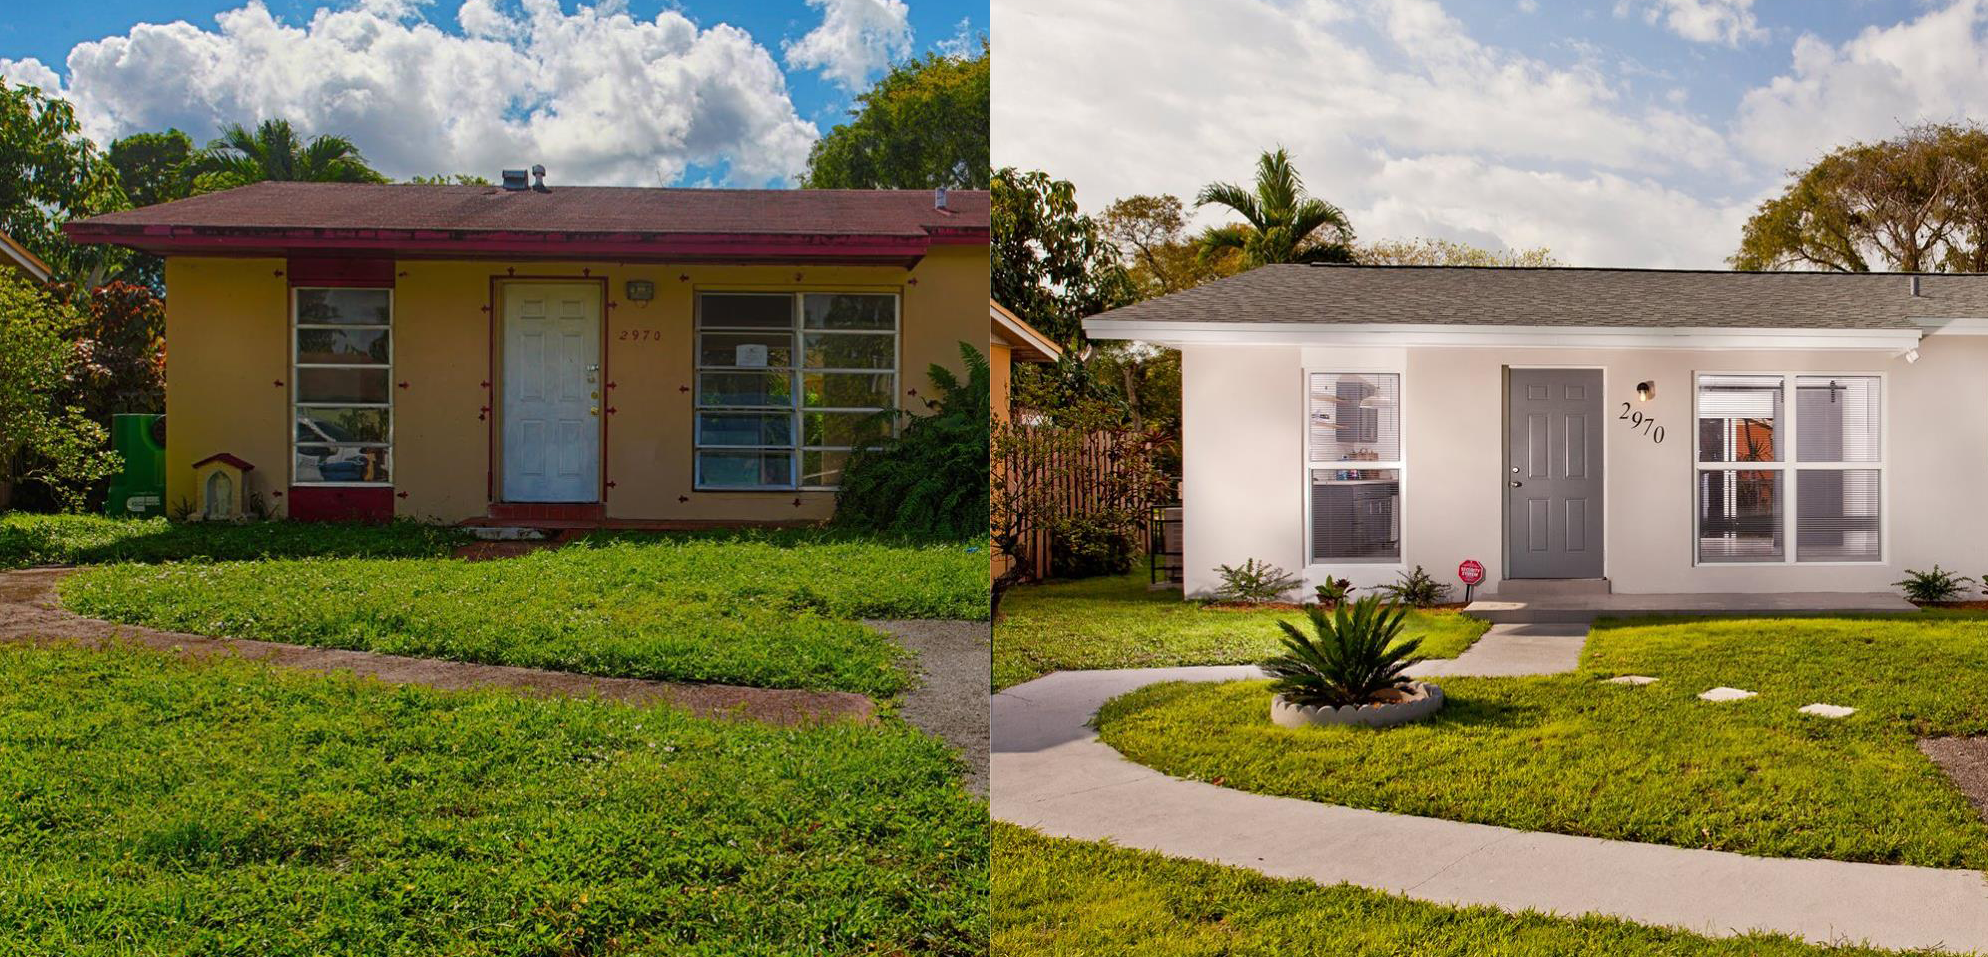 6 Stellar Renovation Stories from Curbed Readers